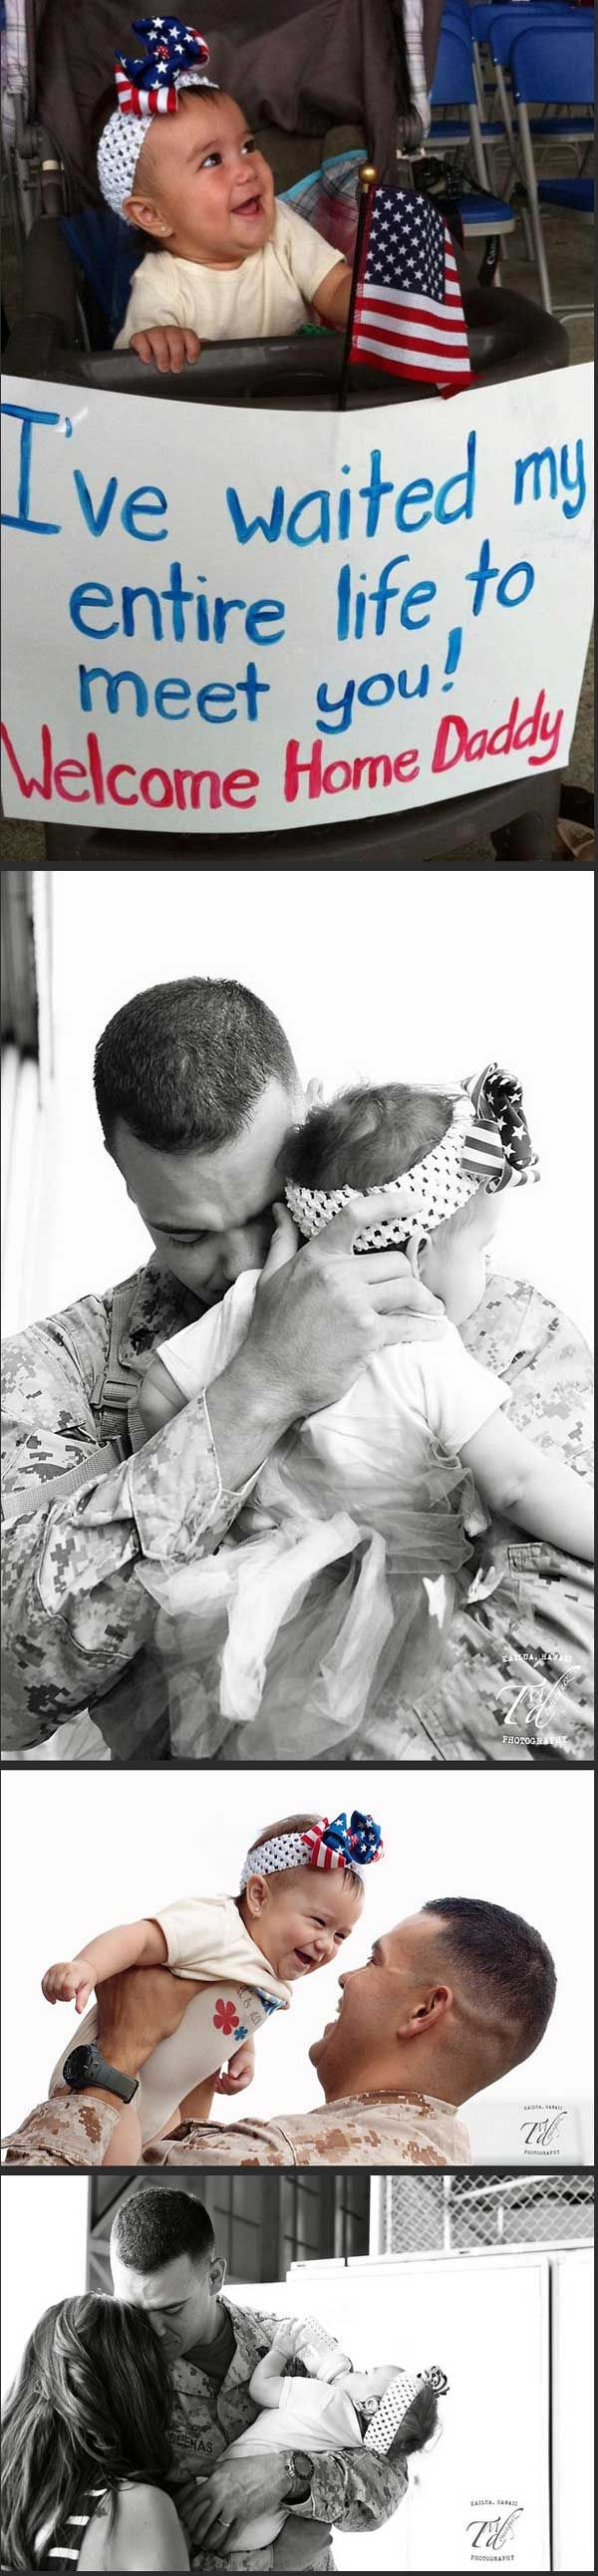 I am so thankful for our wonderful military men and women who sacrifice so much for our freedom.